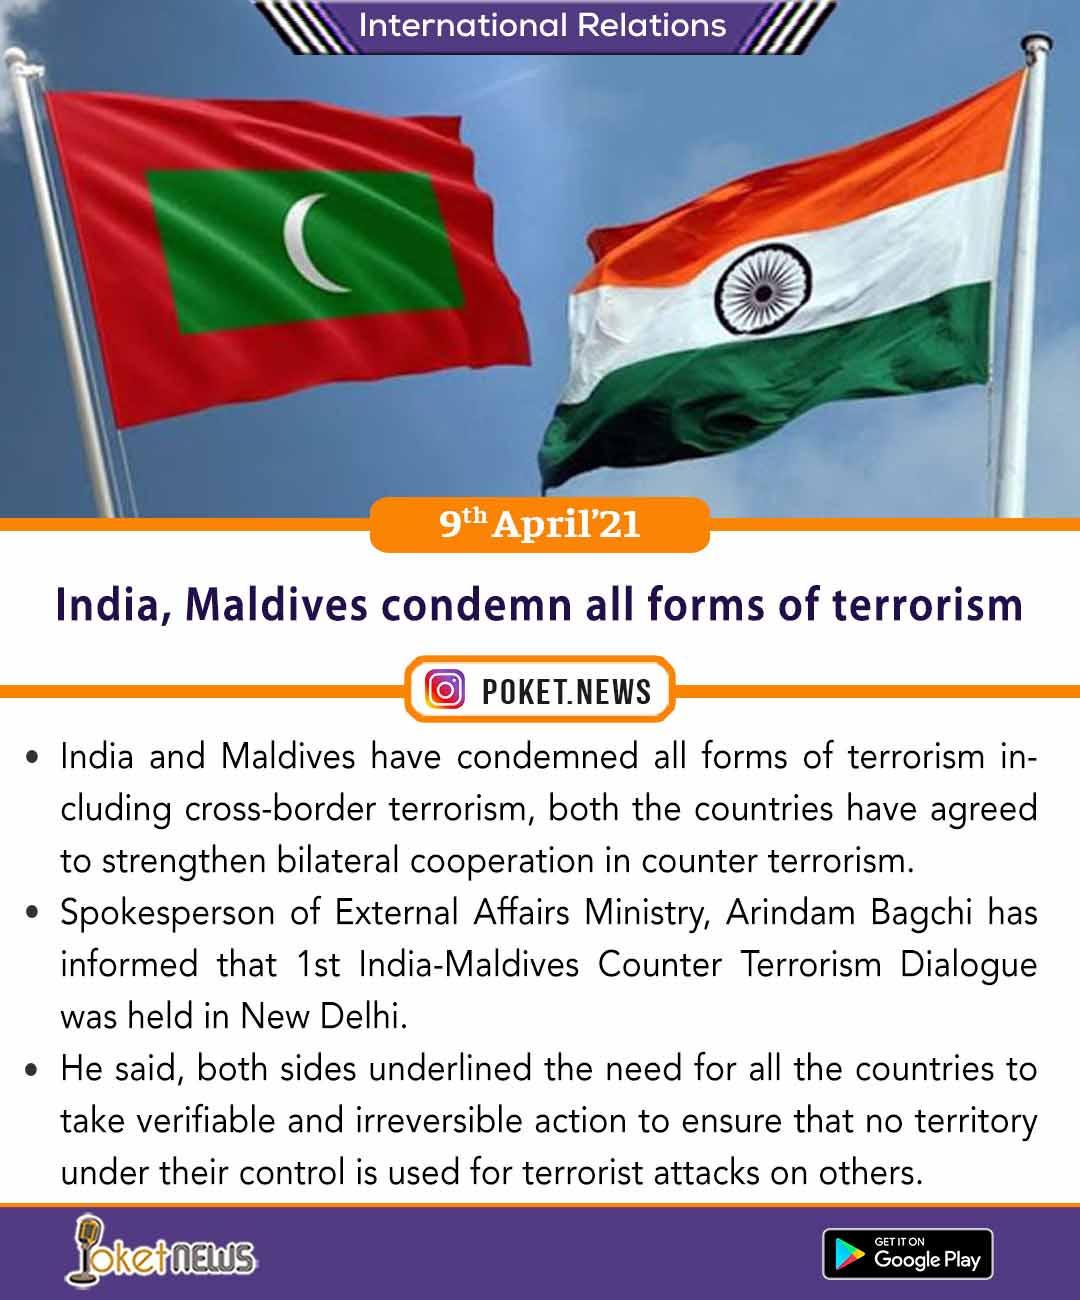 India, Maldives condemn all forms of terrorism